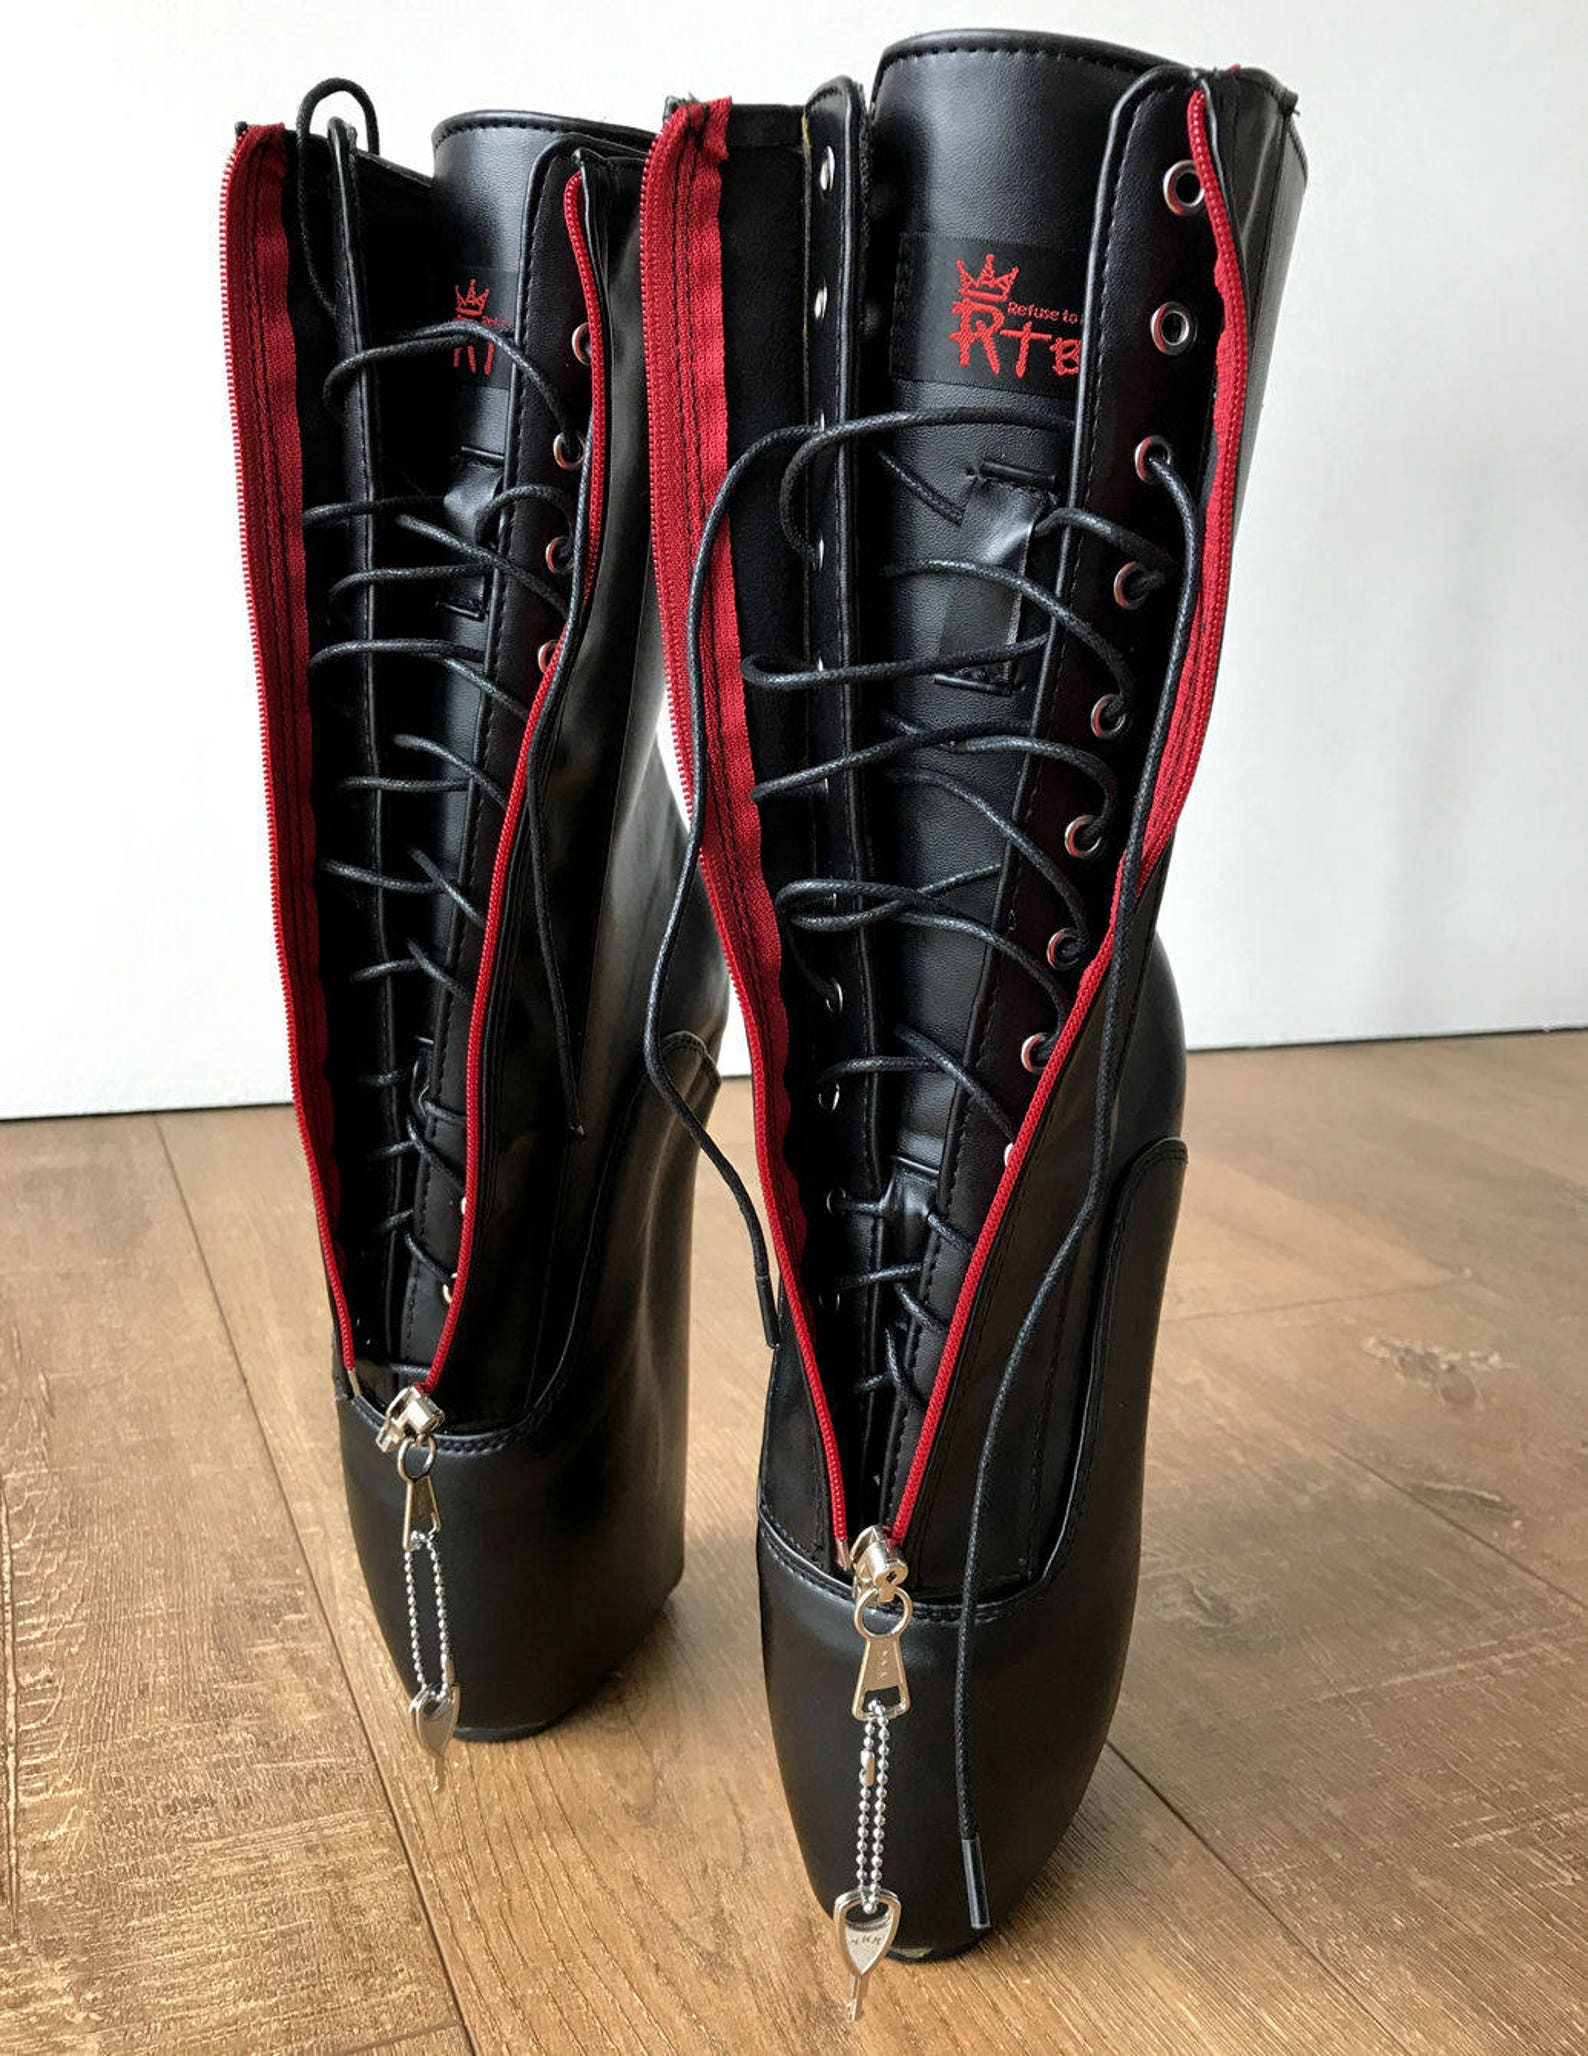 rtbu taboo red lockable zip ballet wedge hidden lace fetish hoof submissive boot